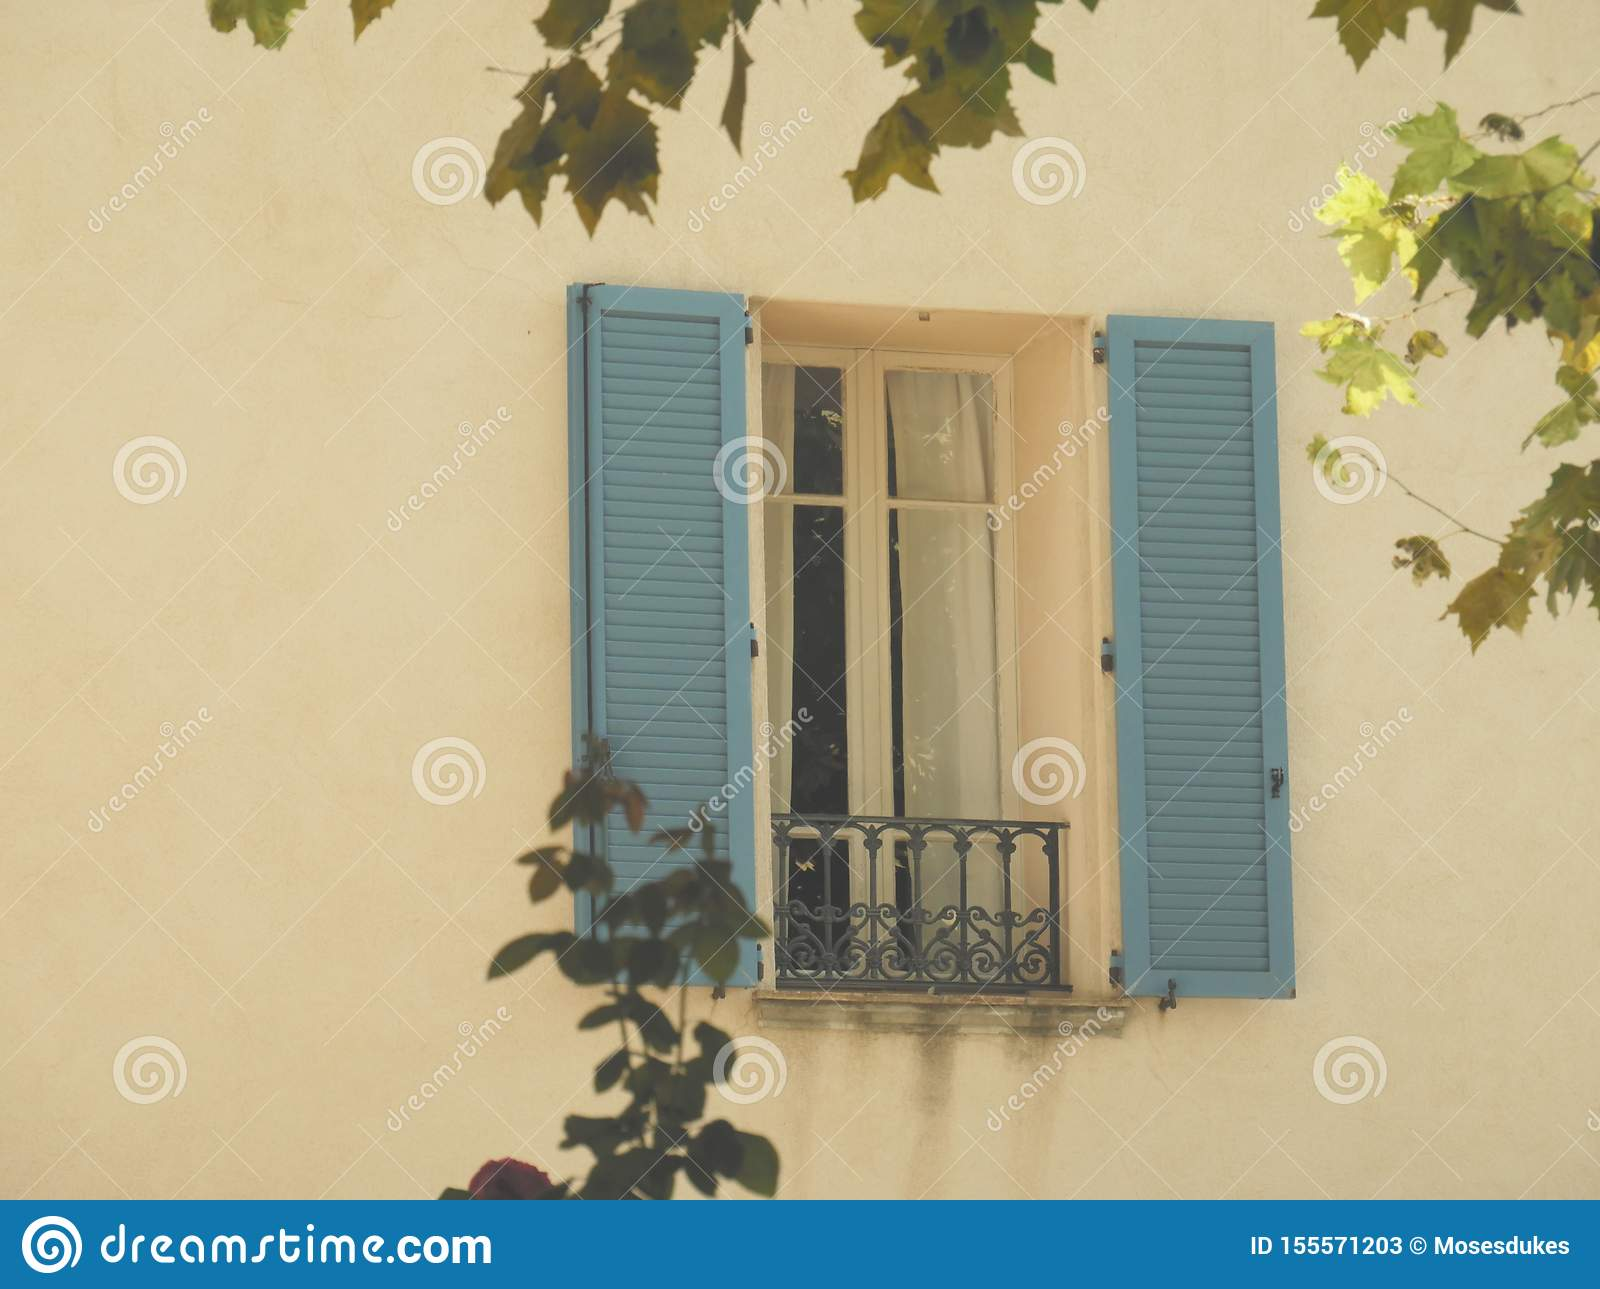 Vintage Looking French Window With Cyan Blue Shutters Stock